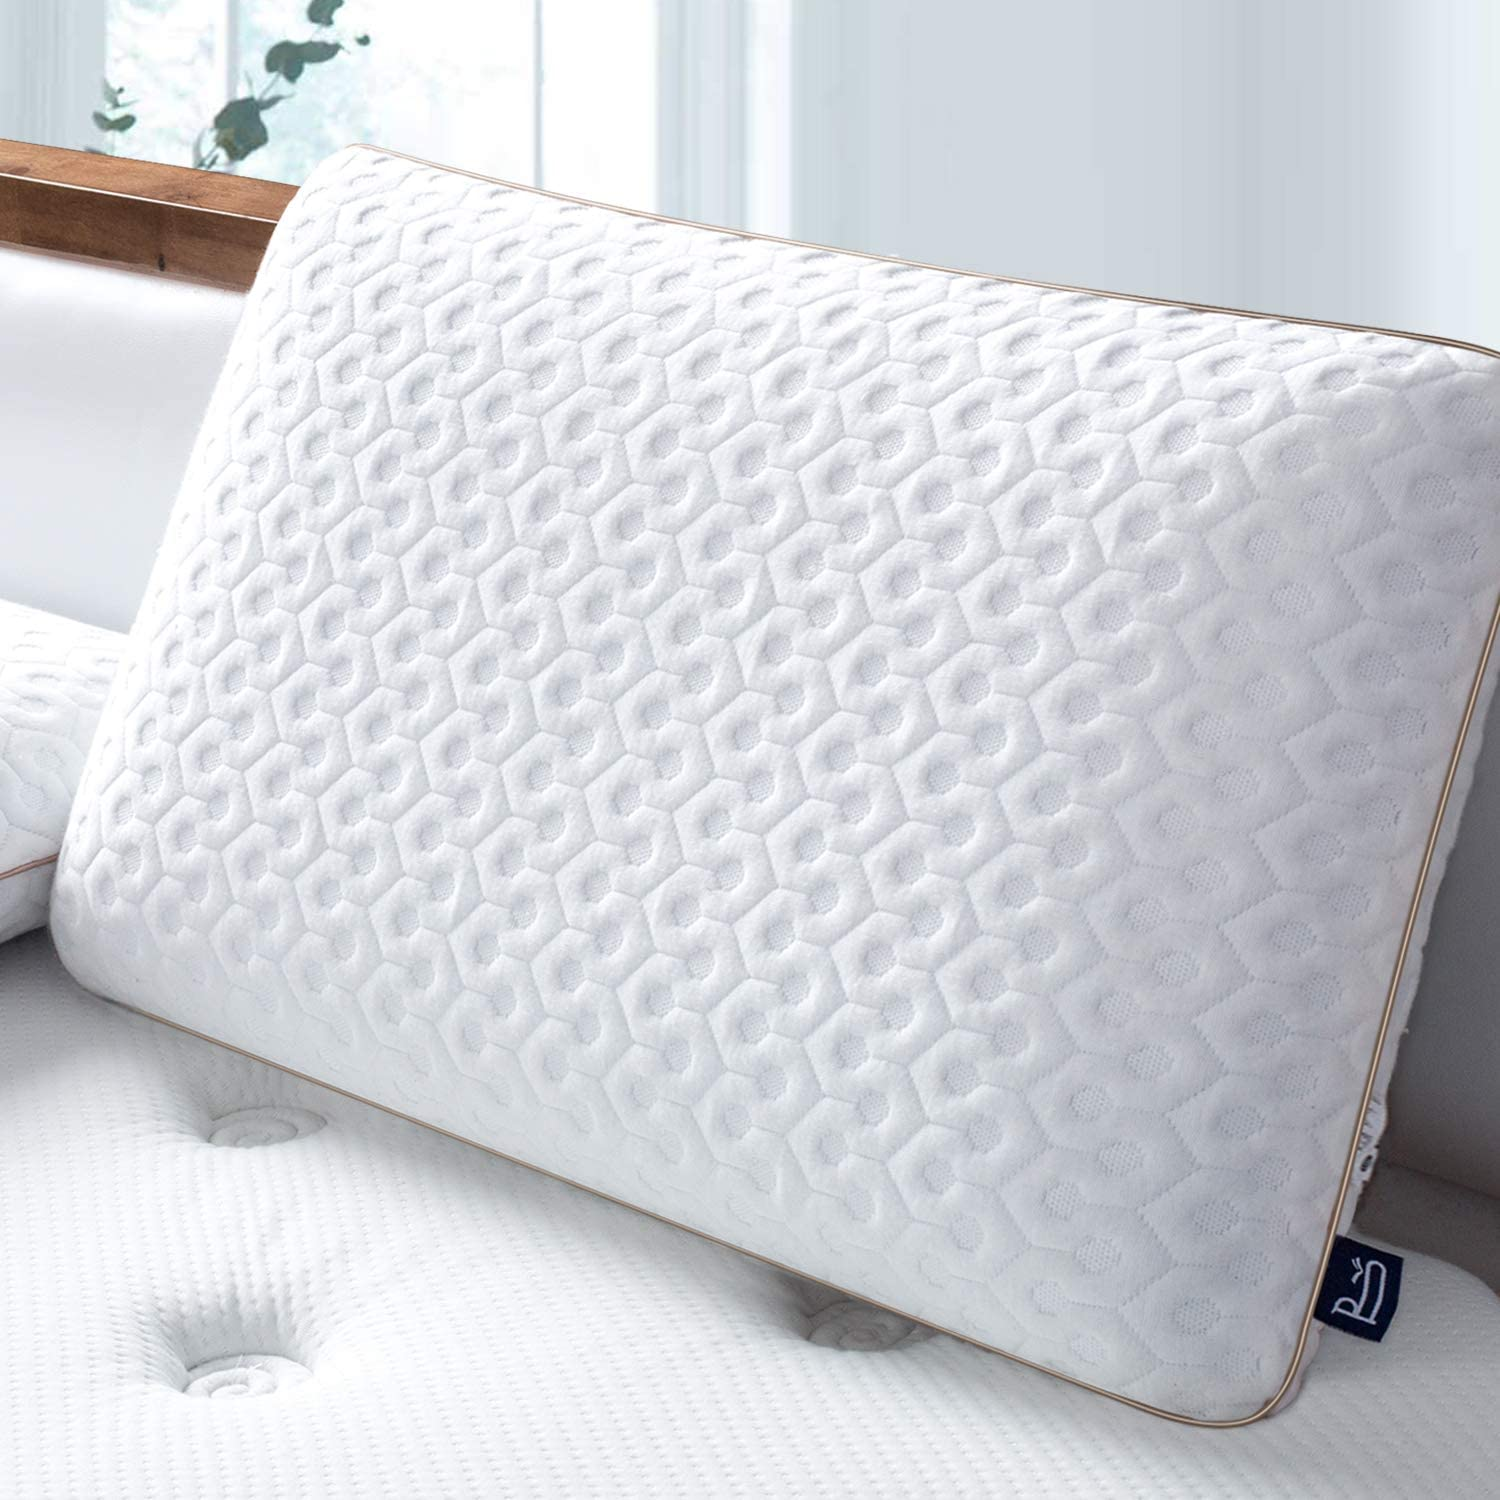 BedStory Memory Foam Pillow, Cooling